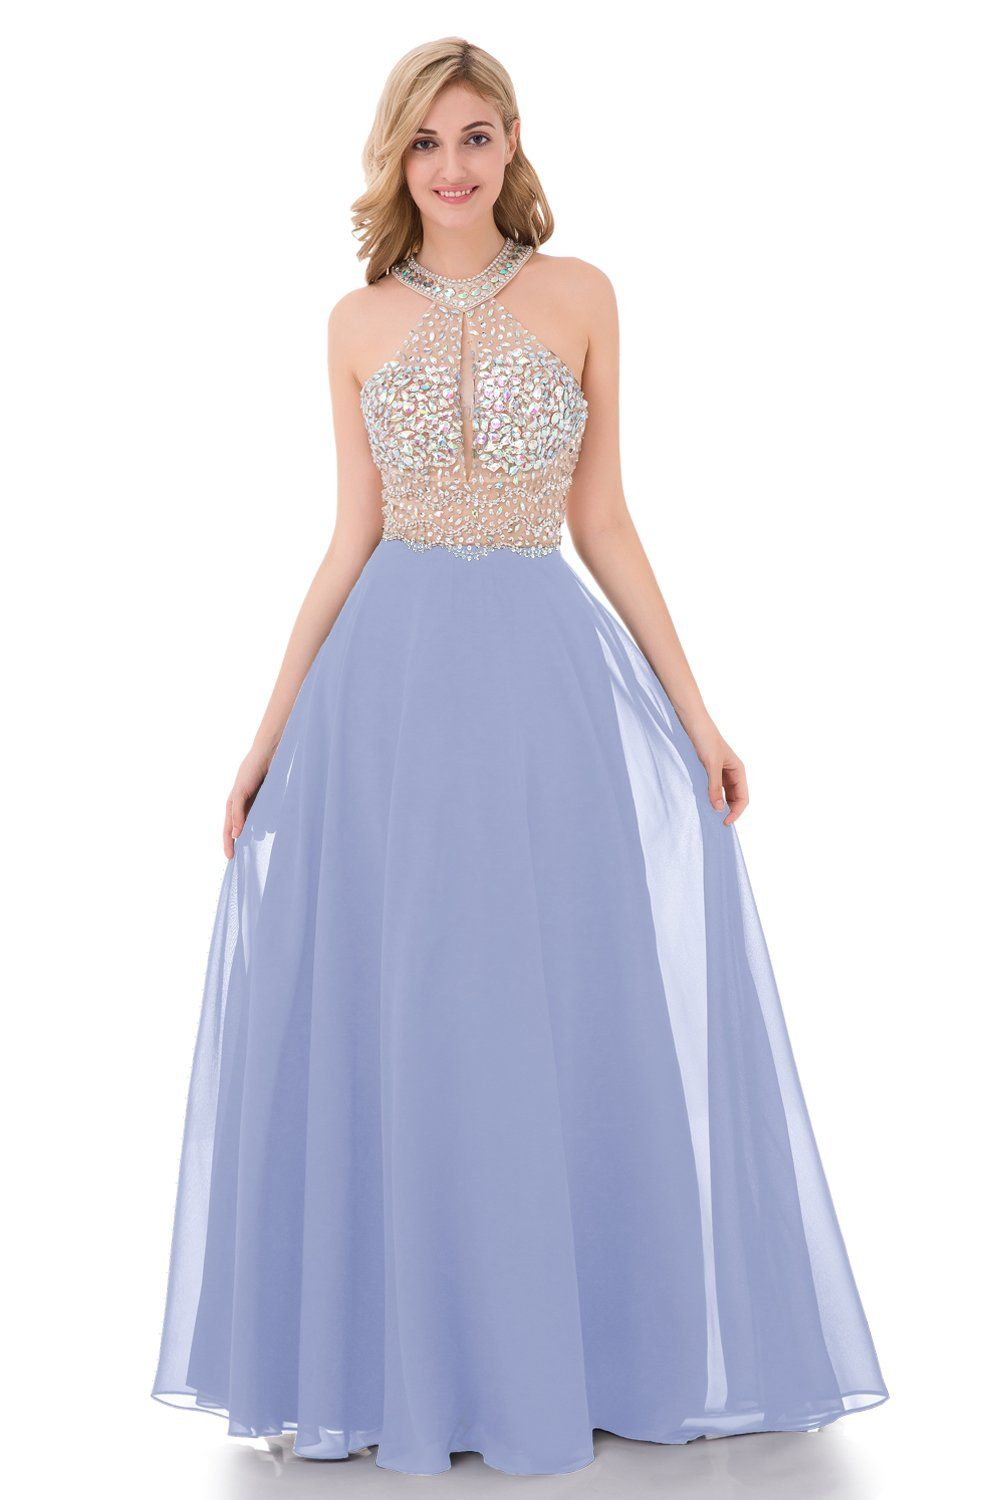 Yunuo sparkly crystal beading prom dresses long sexy open back